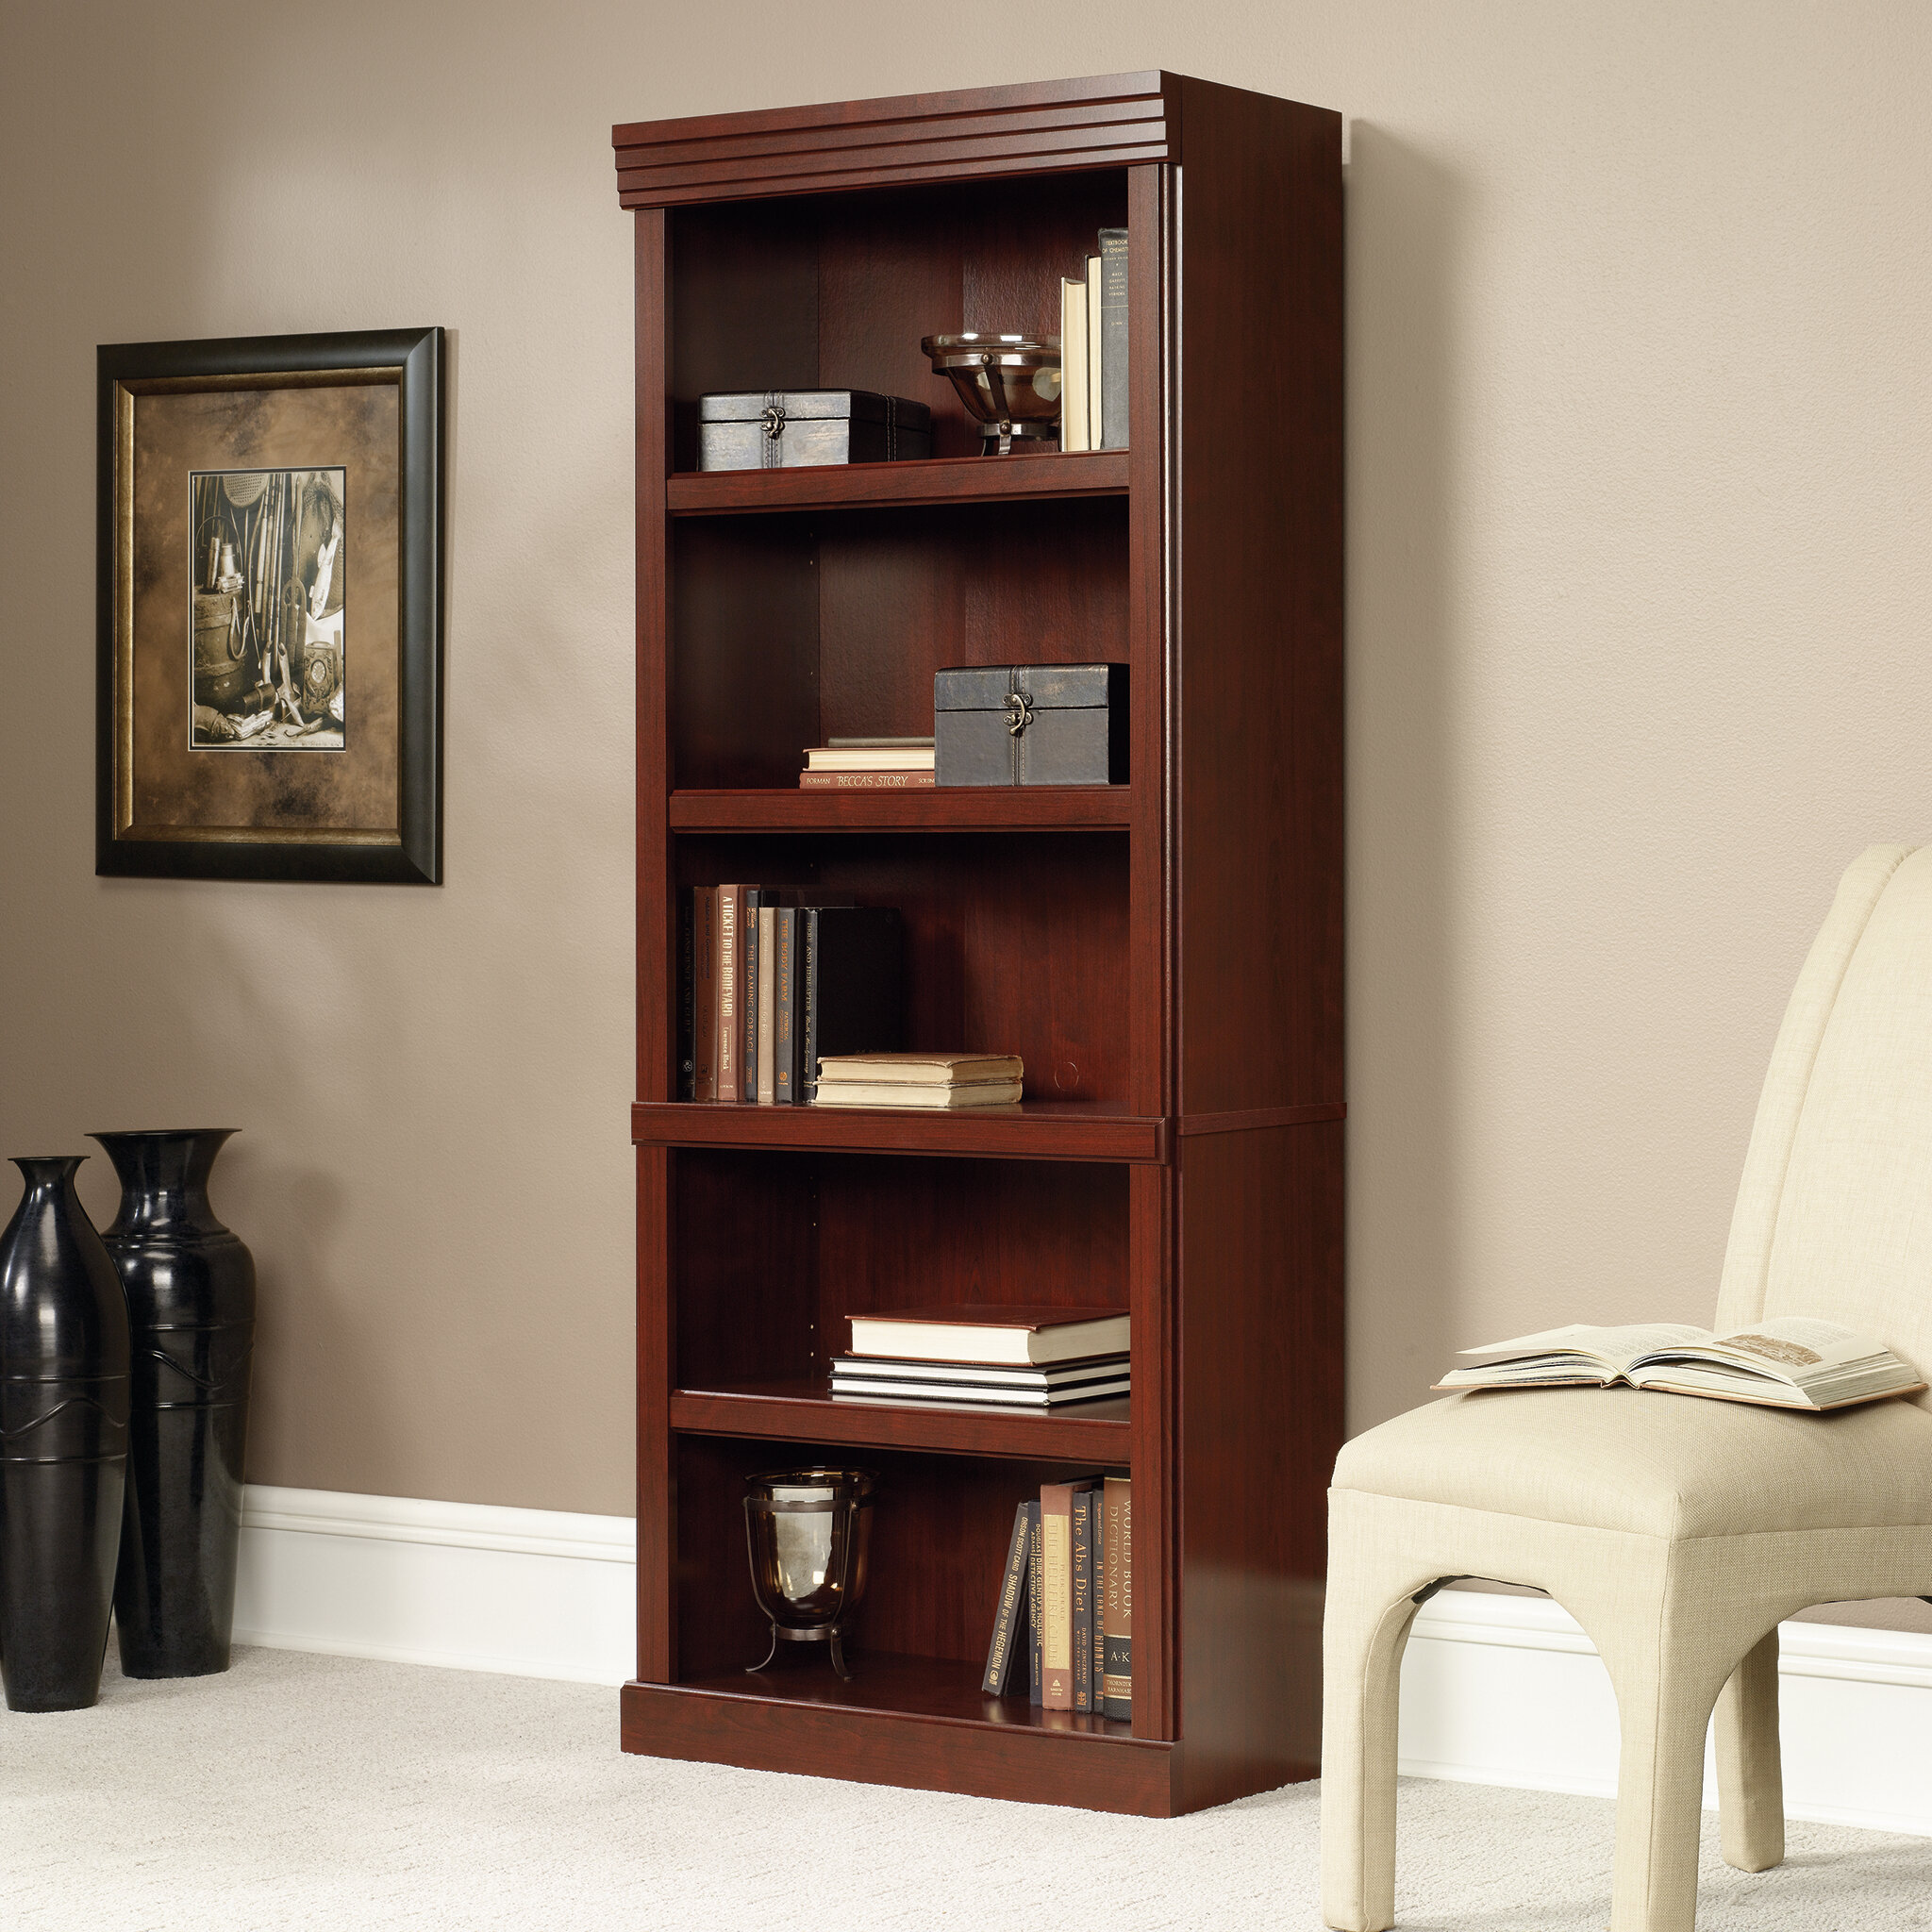 Darby Home Co Clintonville Standard Bookcase Reviews Wayfair